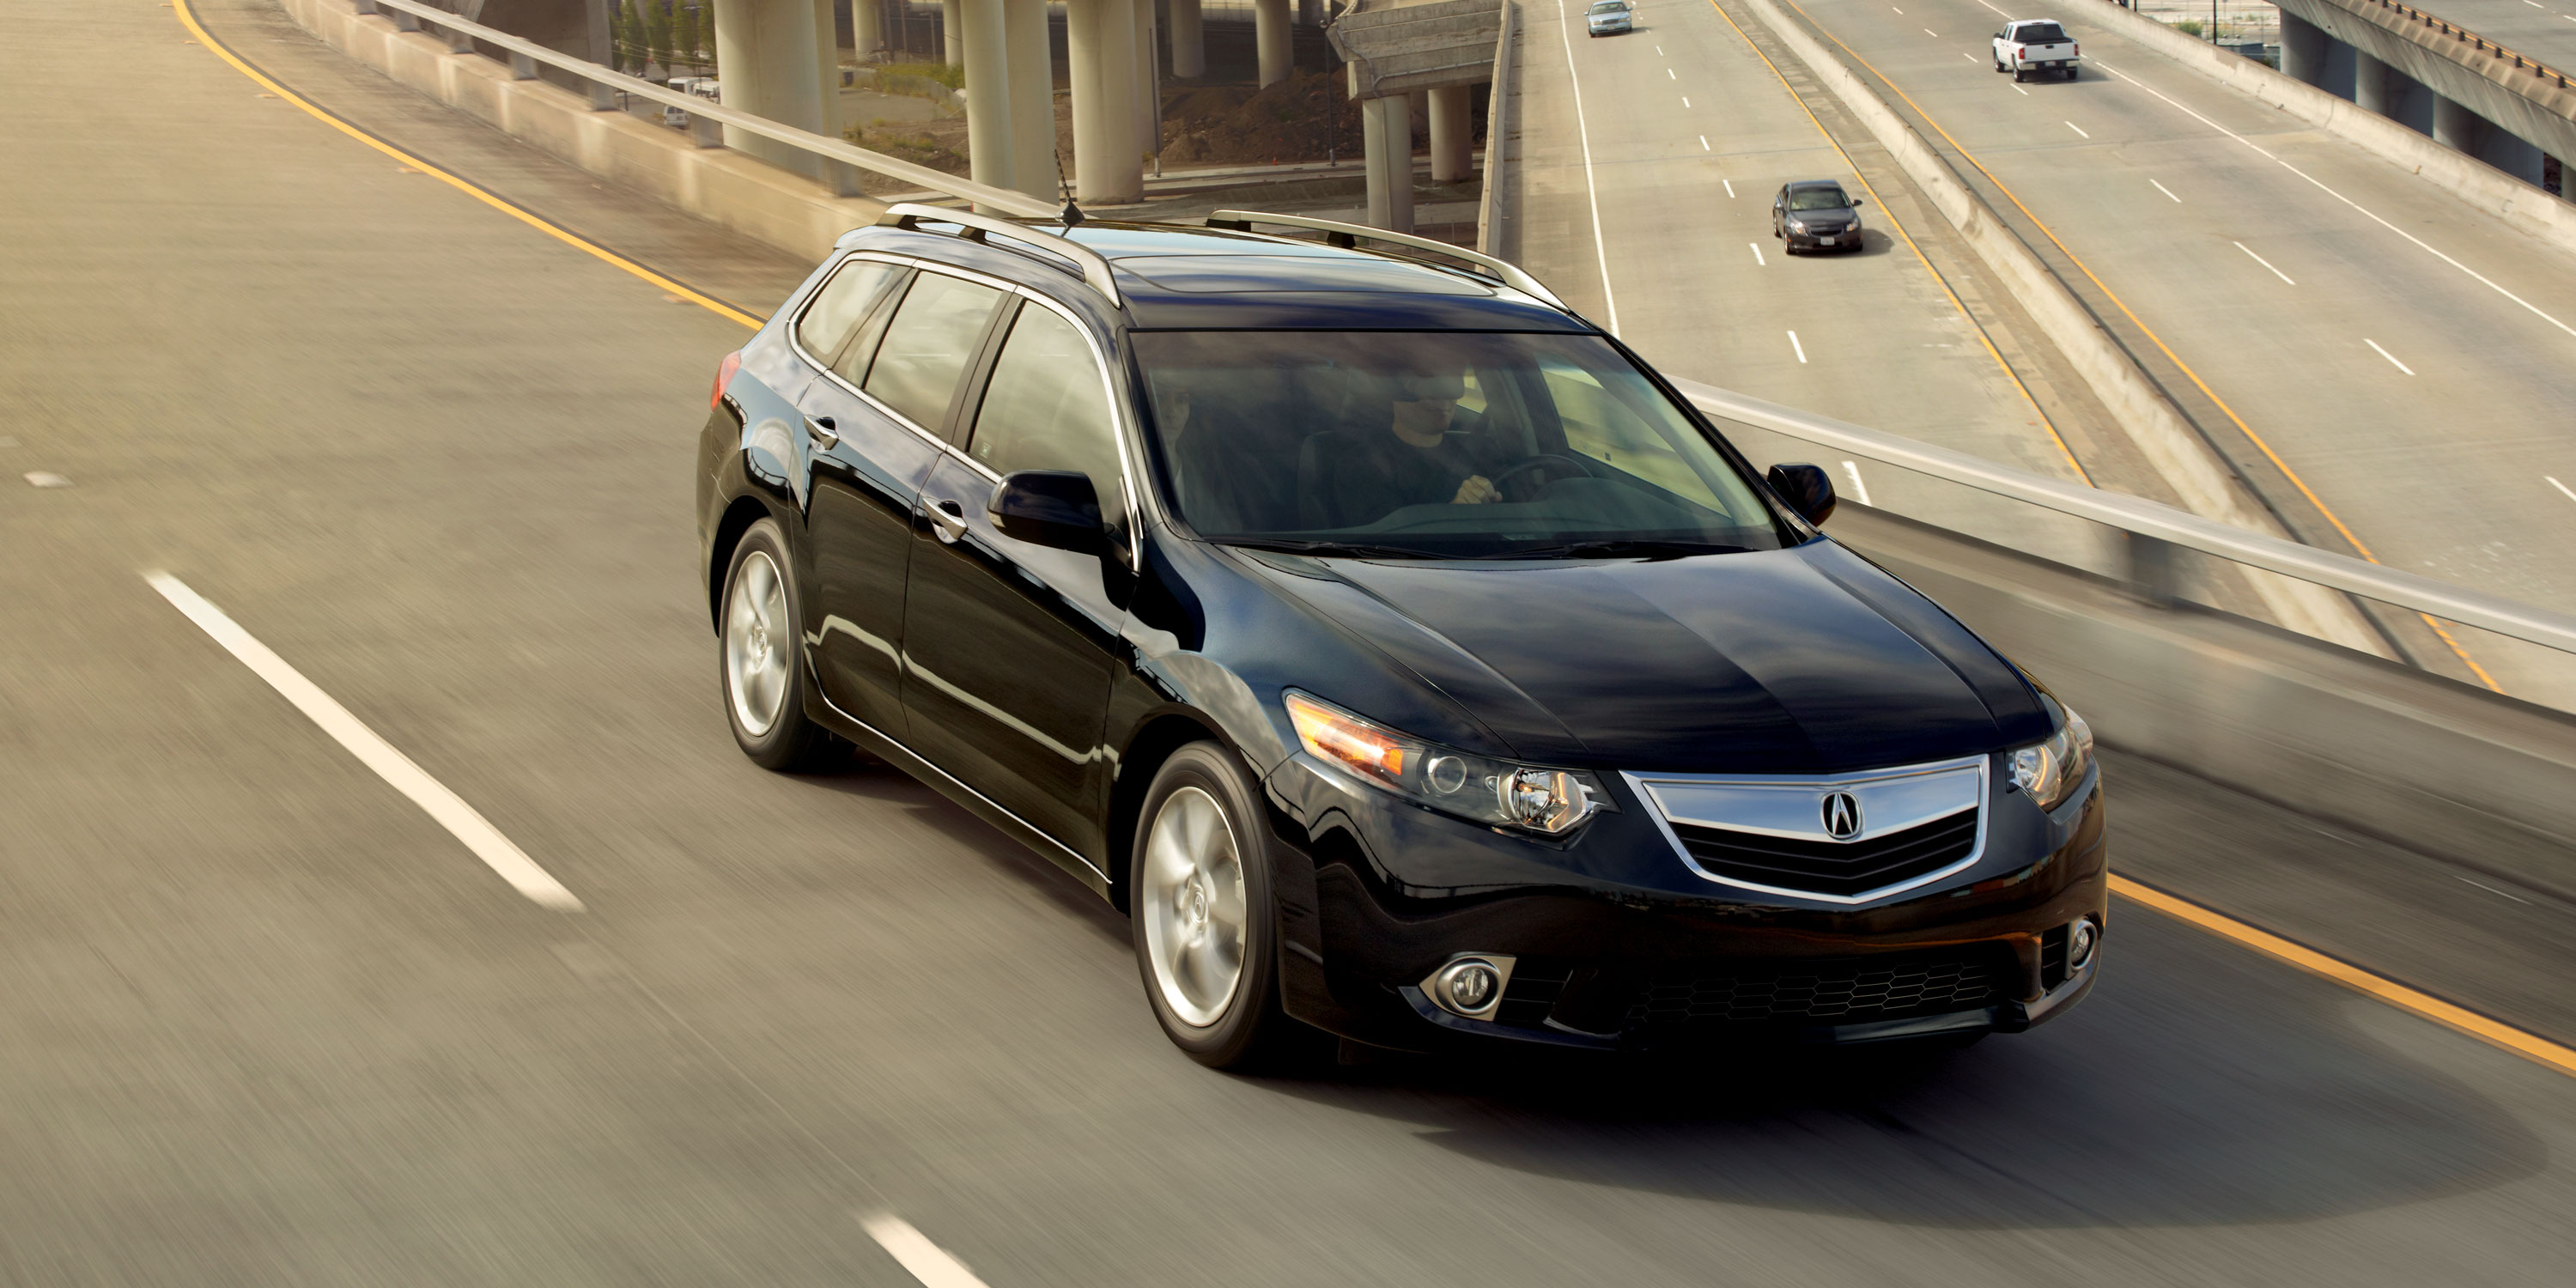 2014 acura tsx sport wagon gallery 526344 top speed. Black Bedroom Furniture Sets. Home Design Ideas